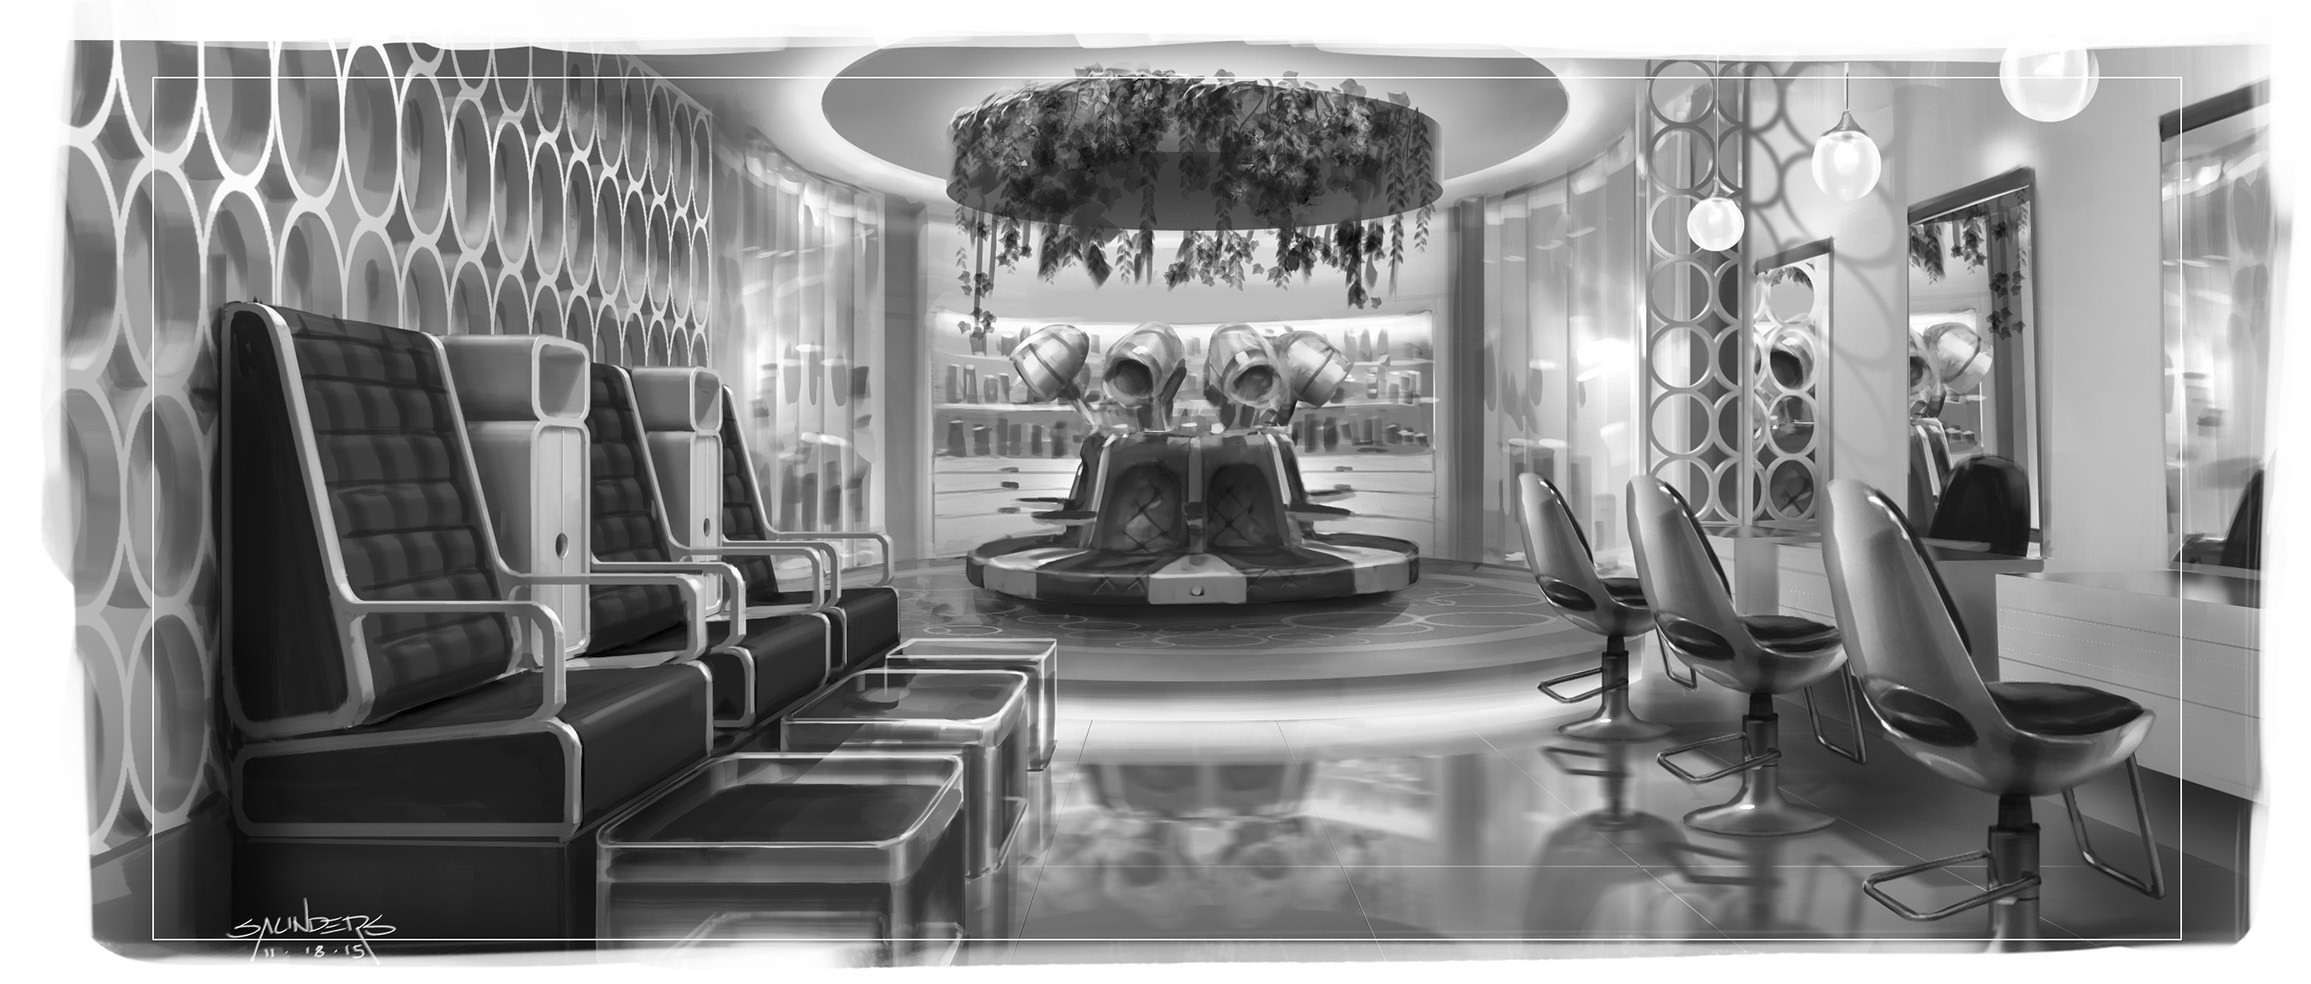 Probably the closest of any to the final design as seen in the film. A few design elements were retained, such as the circular pattern on the wall and the hanging plants over the circular dias